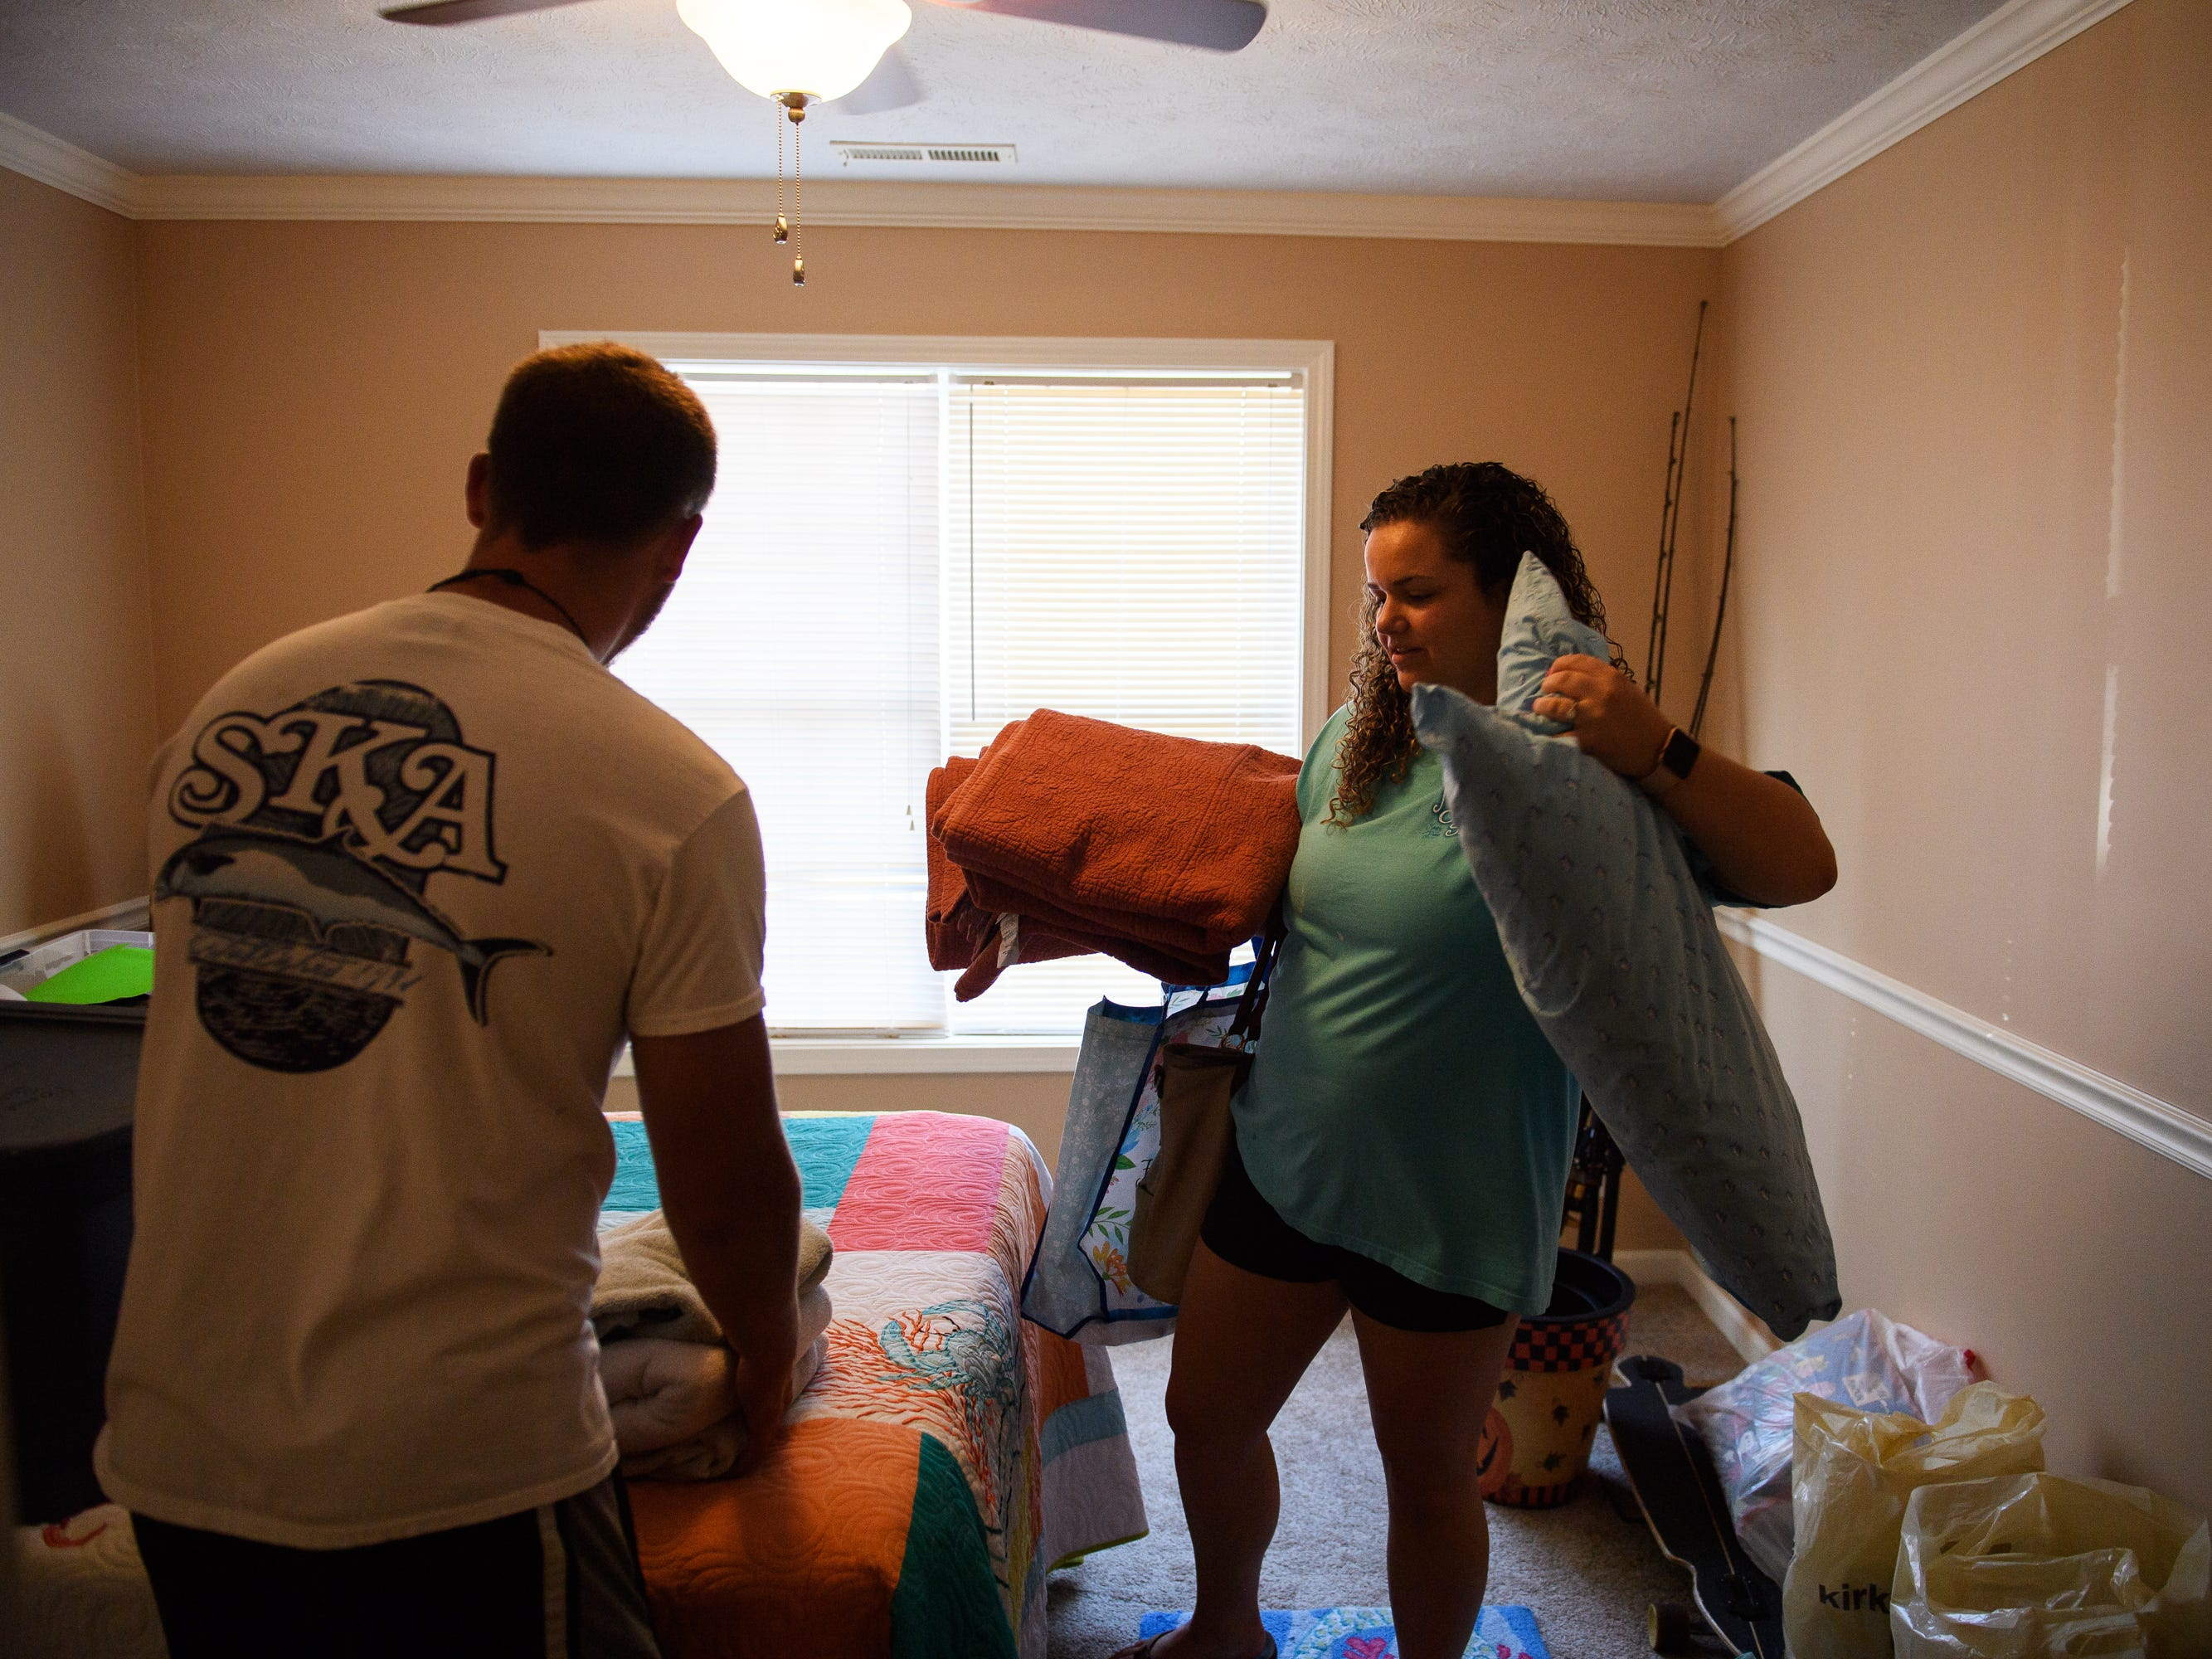 North Myrtle Beach residents Karly Suggs and Jesse Prince pack up their belongings as they prepare to evacuate their home ahead of Hurricane Florence on Wednesday, Sept. 12, 2018.